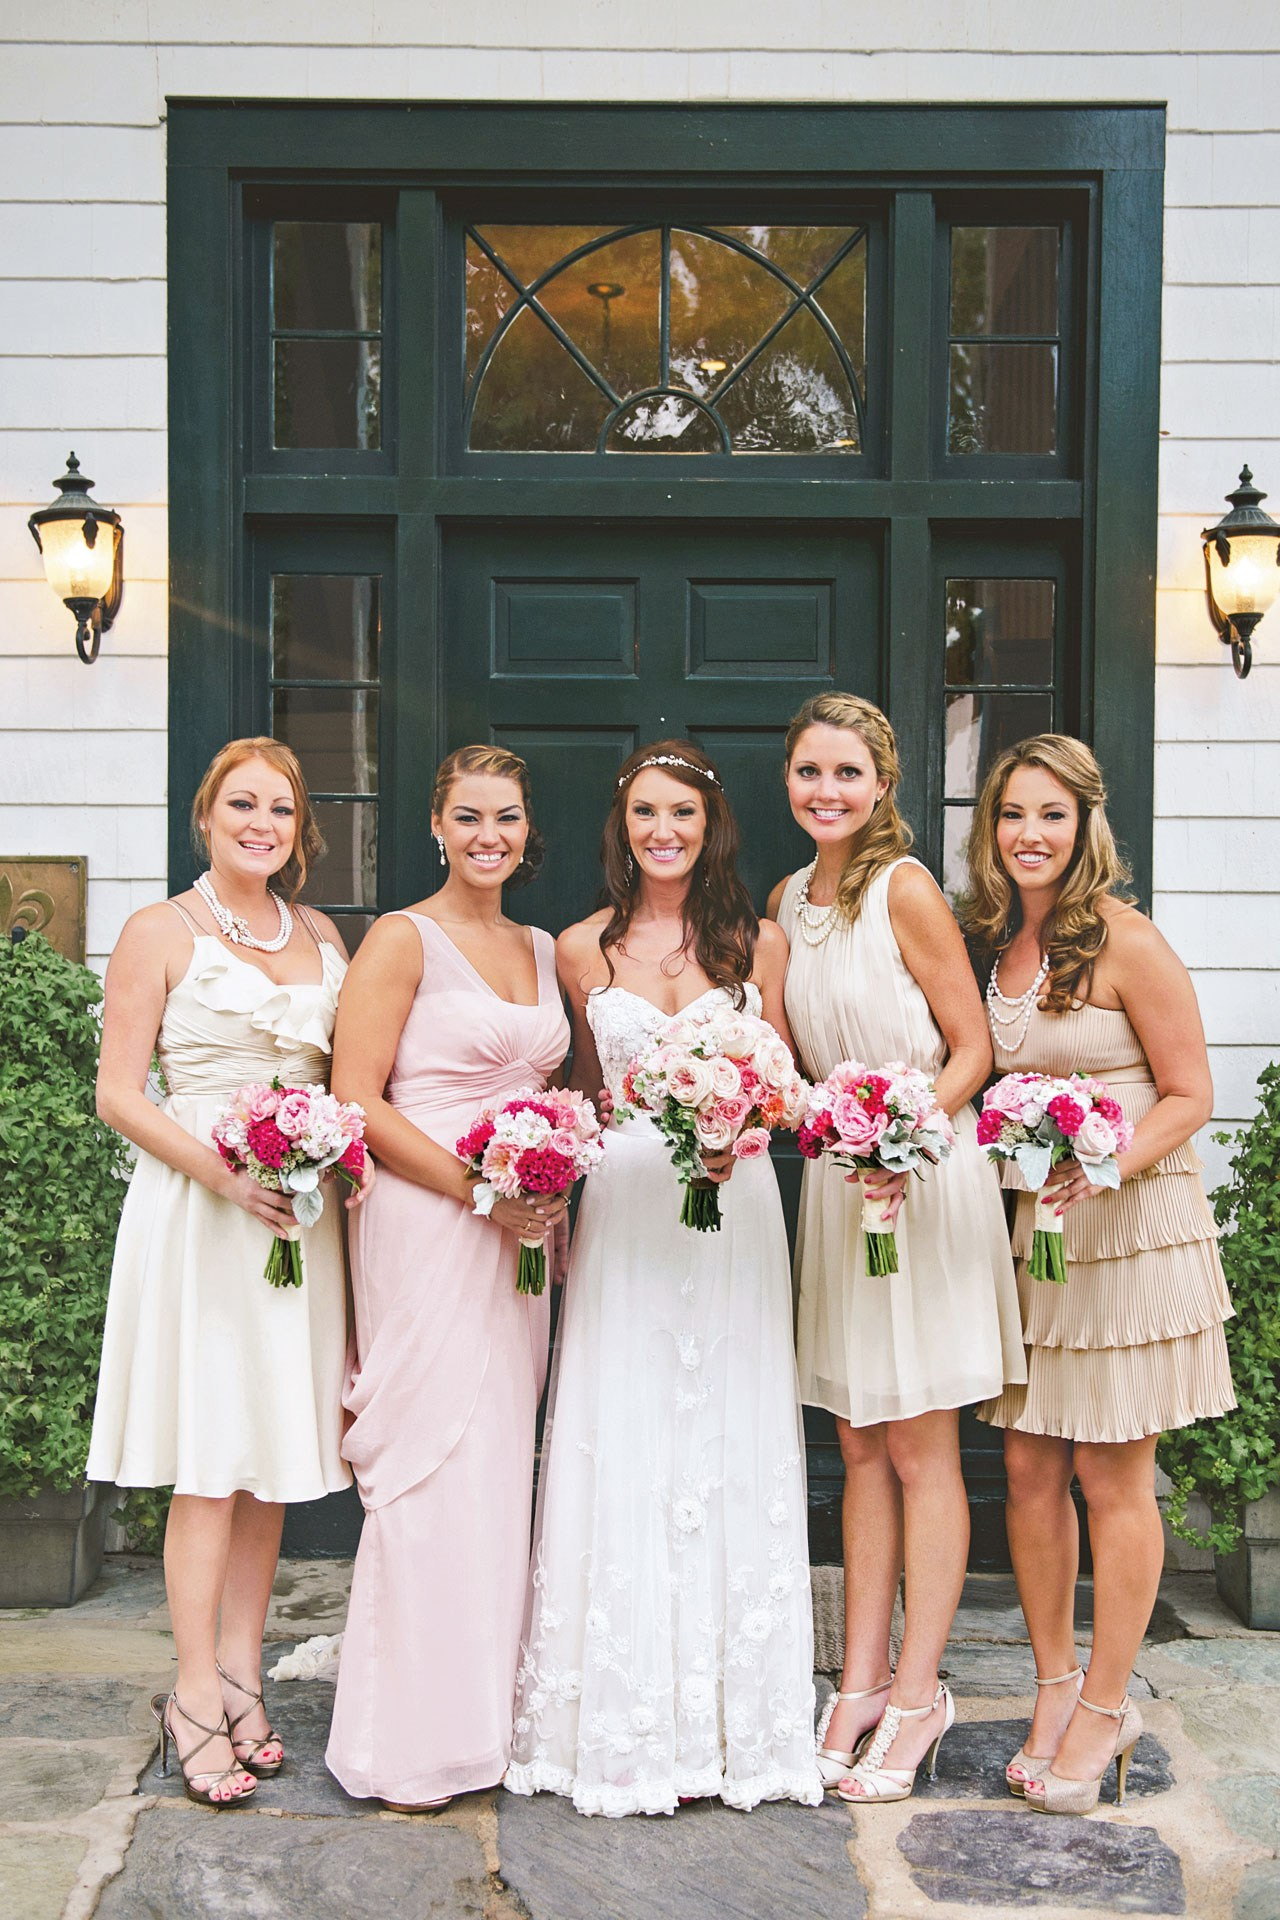 Tips on how to choose bridesmaids dresses that everyone will love tips on how to choose bridesmaids dresses that everyone will love ombrellifo Images